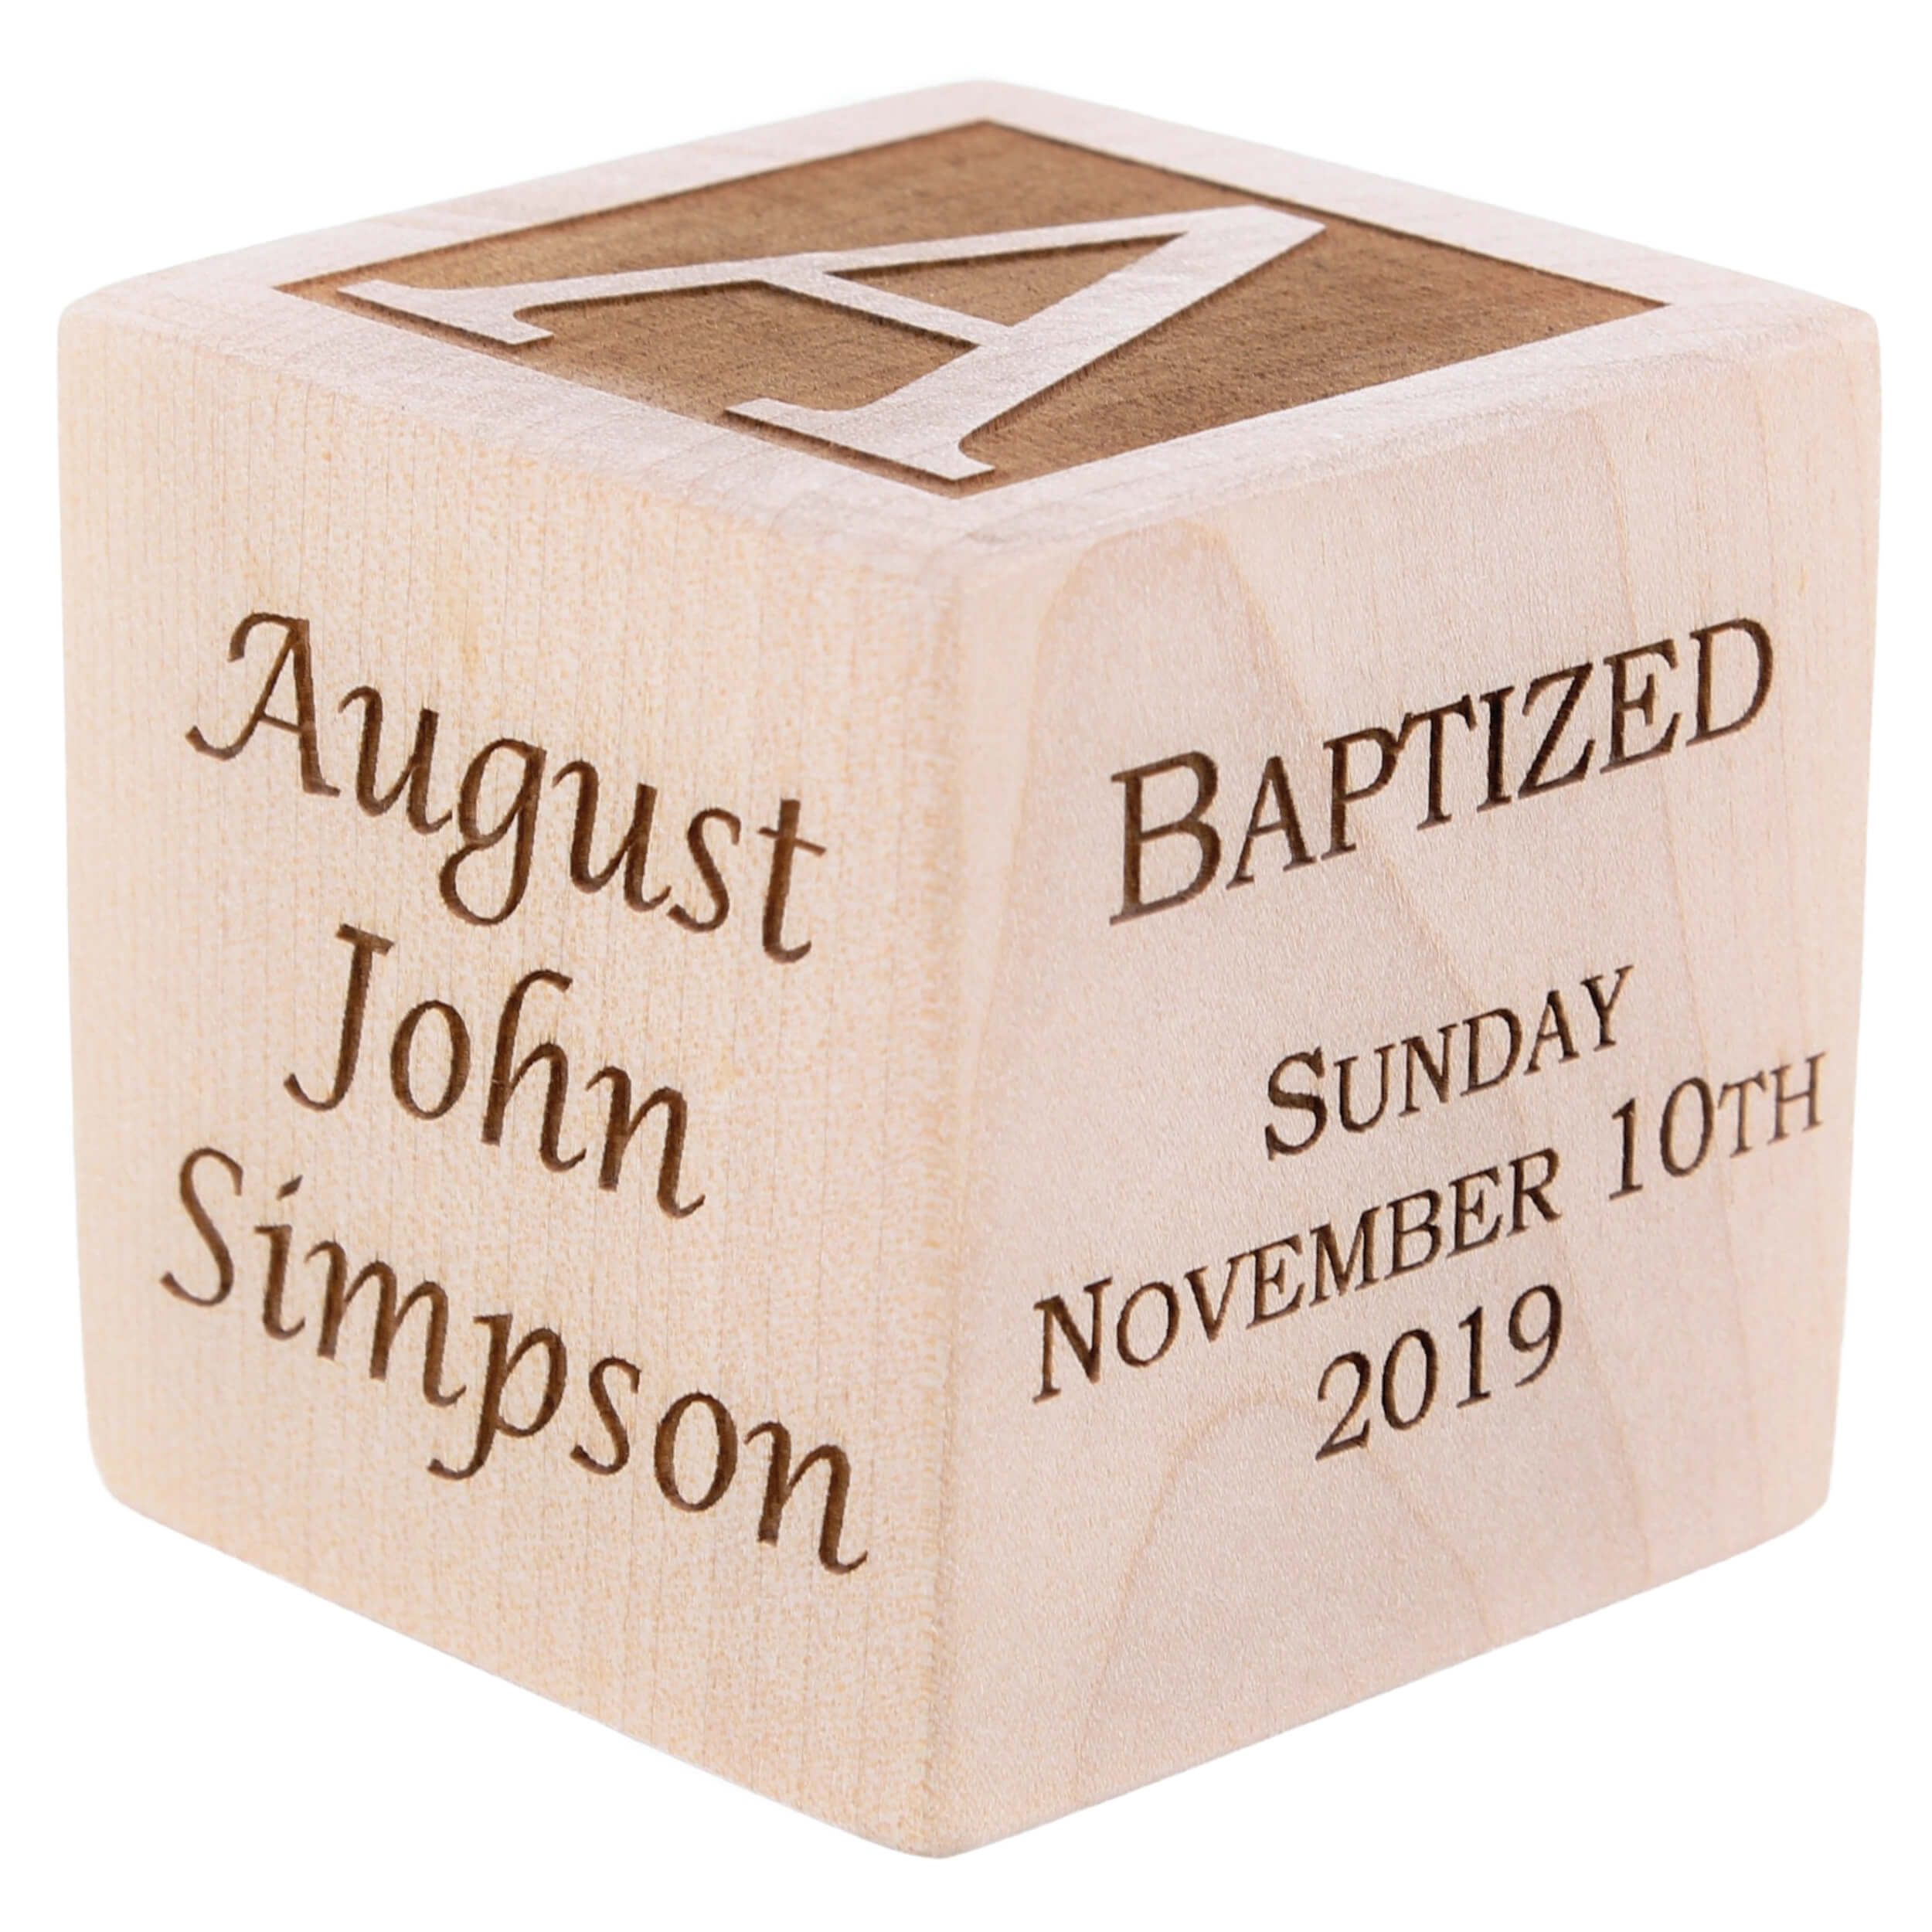 Baby Baptism Block from Palmetto Wood Shop